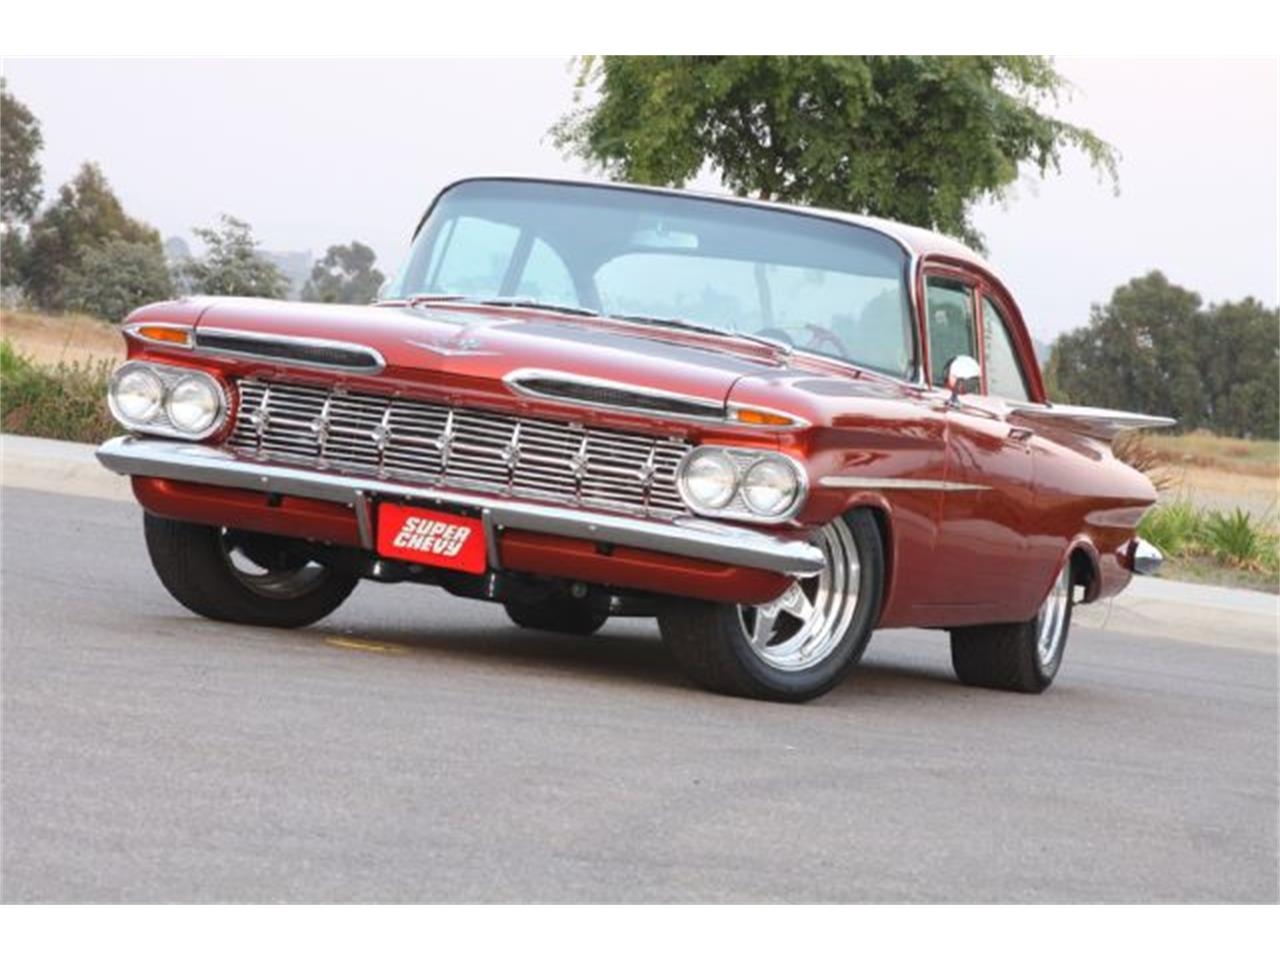 1959 Chevrolet Biscayne (CC-1113353) for sale in Carthage, North Carolina